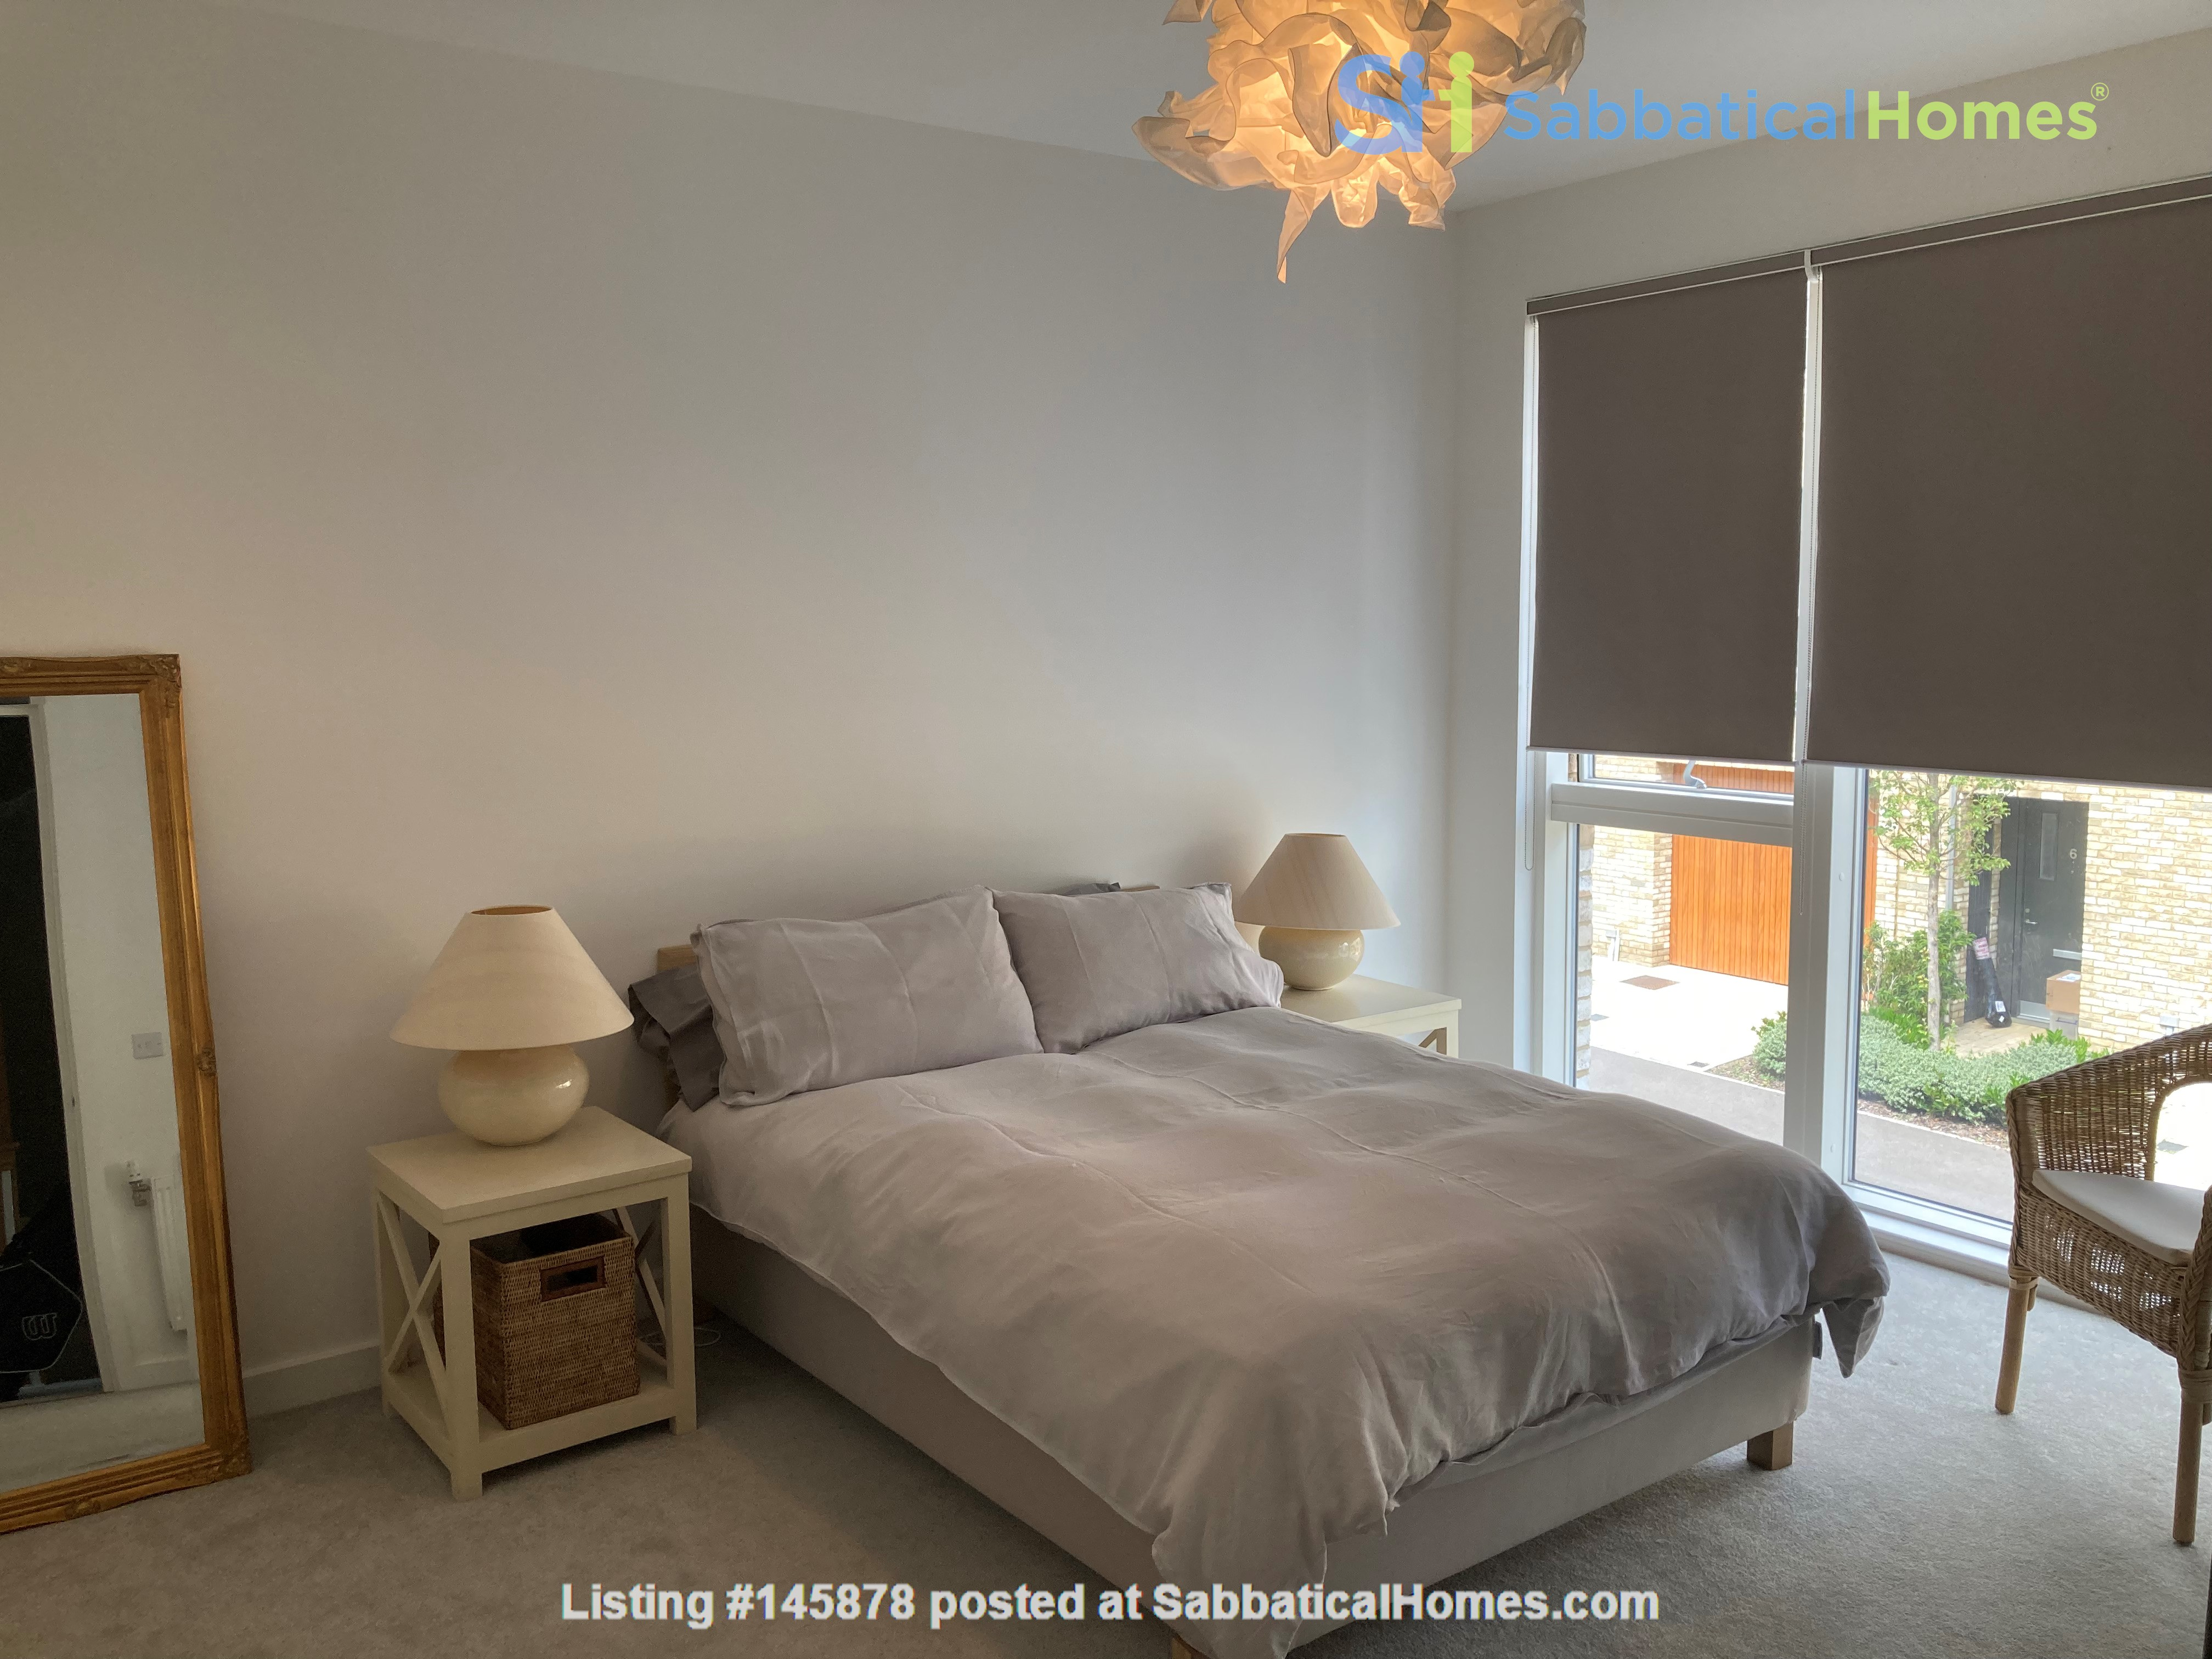 Beautifully furnished 3 bedroom + 4 bathroom townhouse in Cambridge. Home Rental in  6